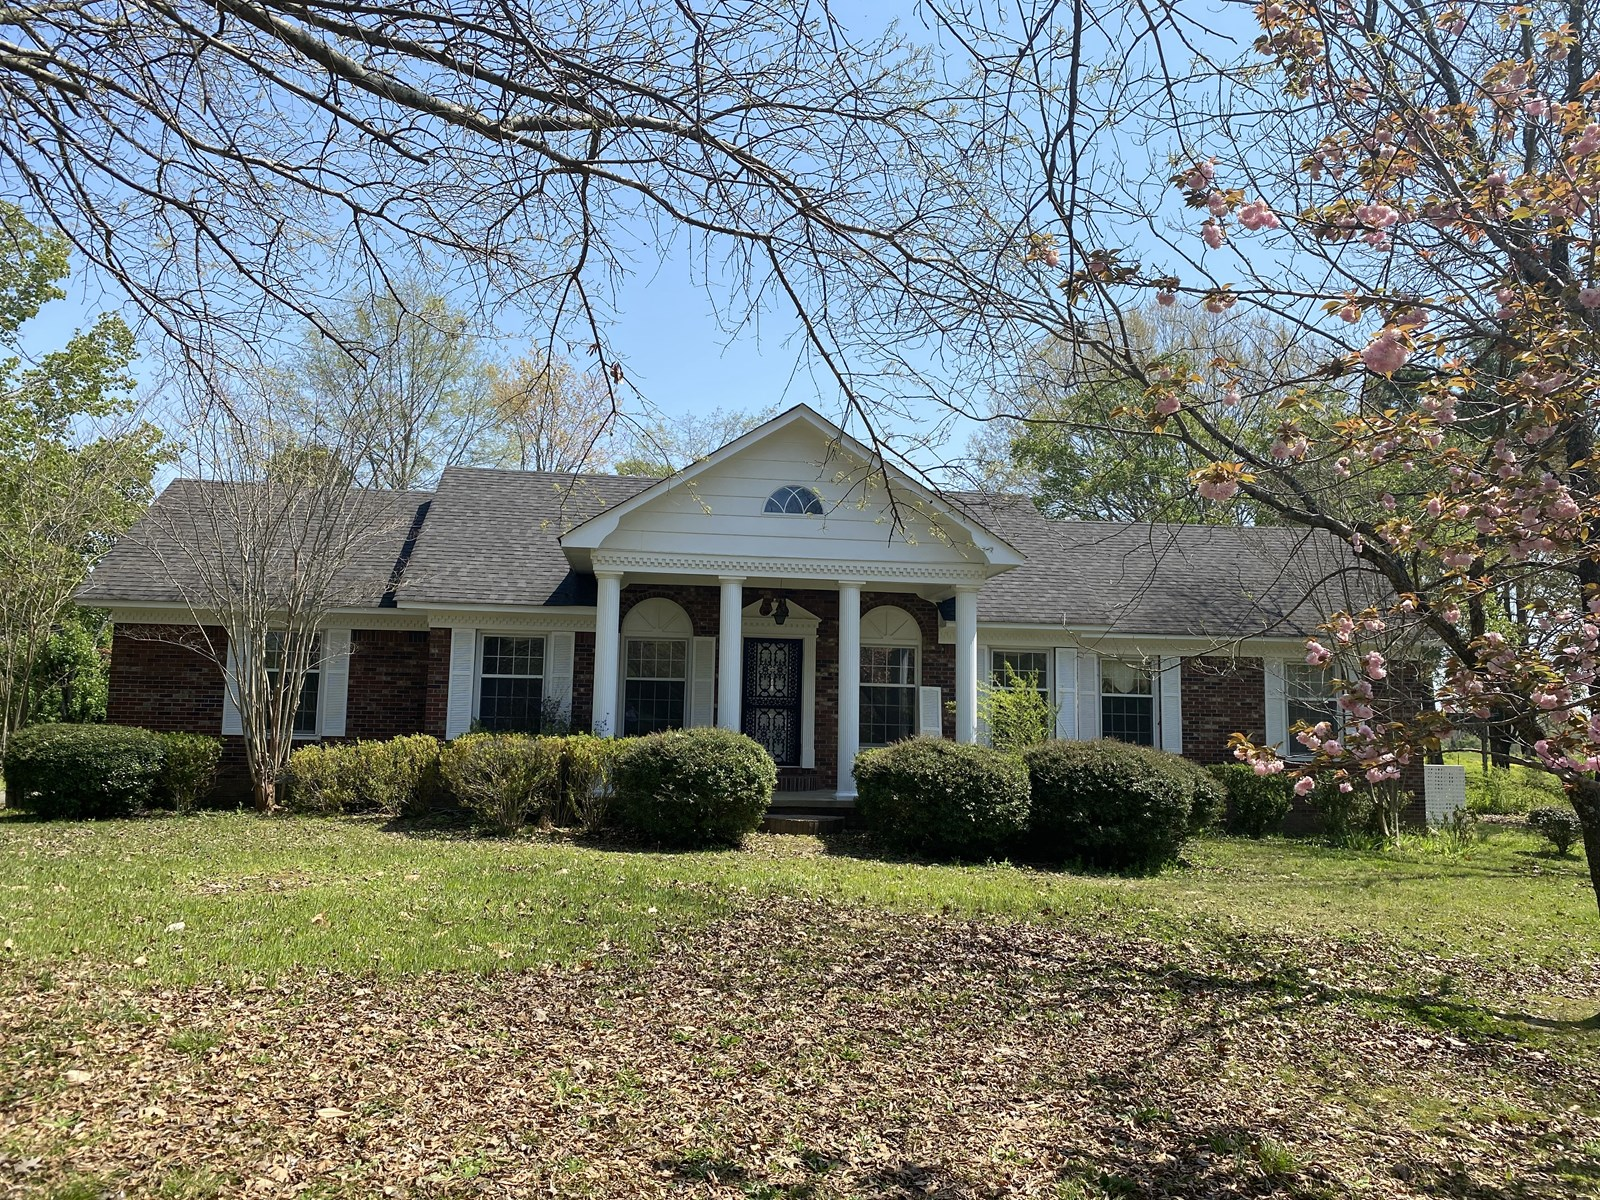 COUNTRY HOME, 4 ACRE MINI FARM IN TN FOR SALE, STORM SHELTER